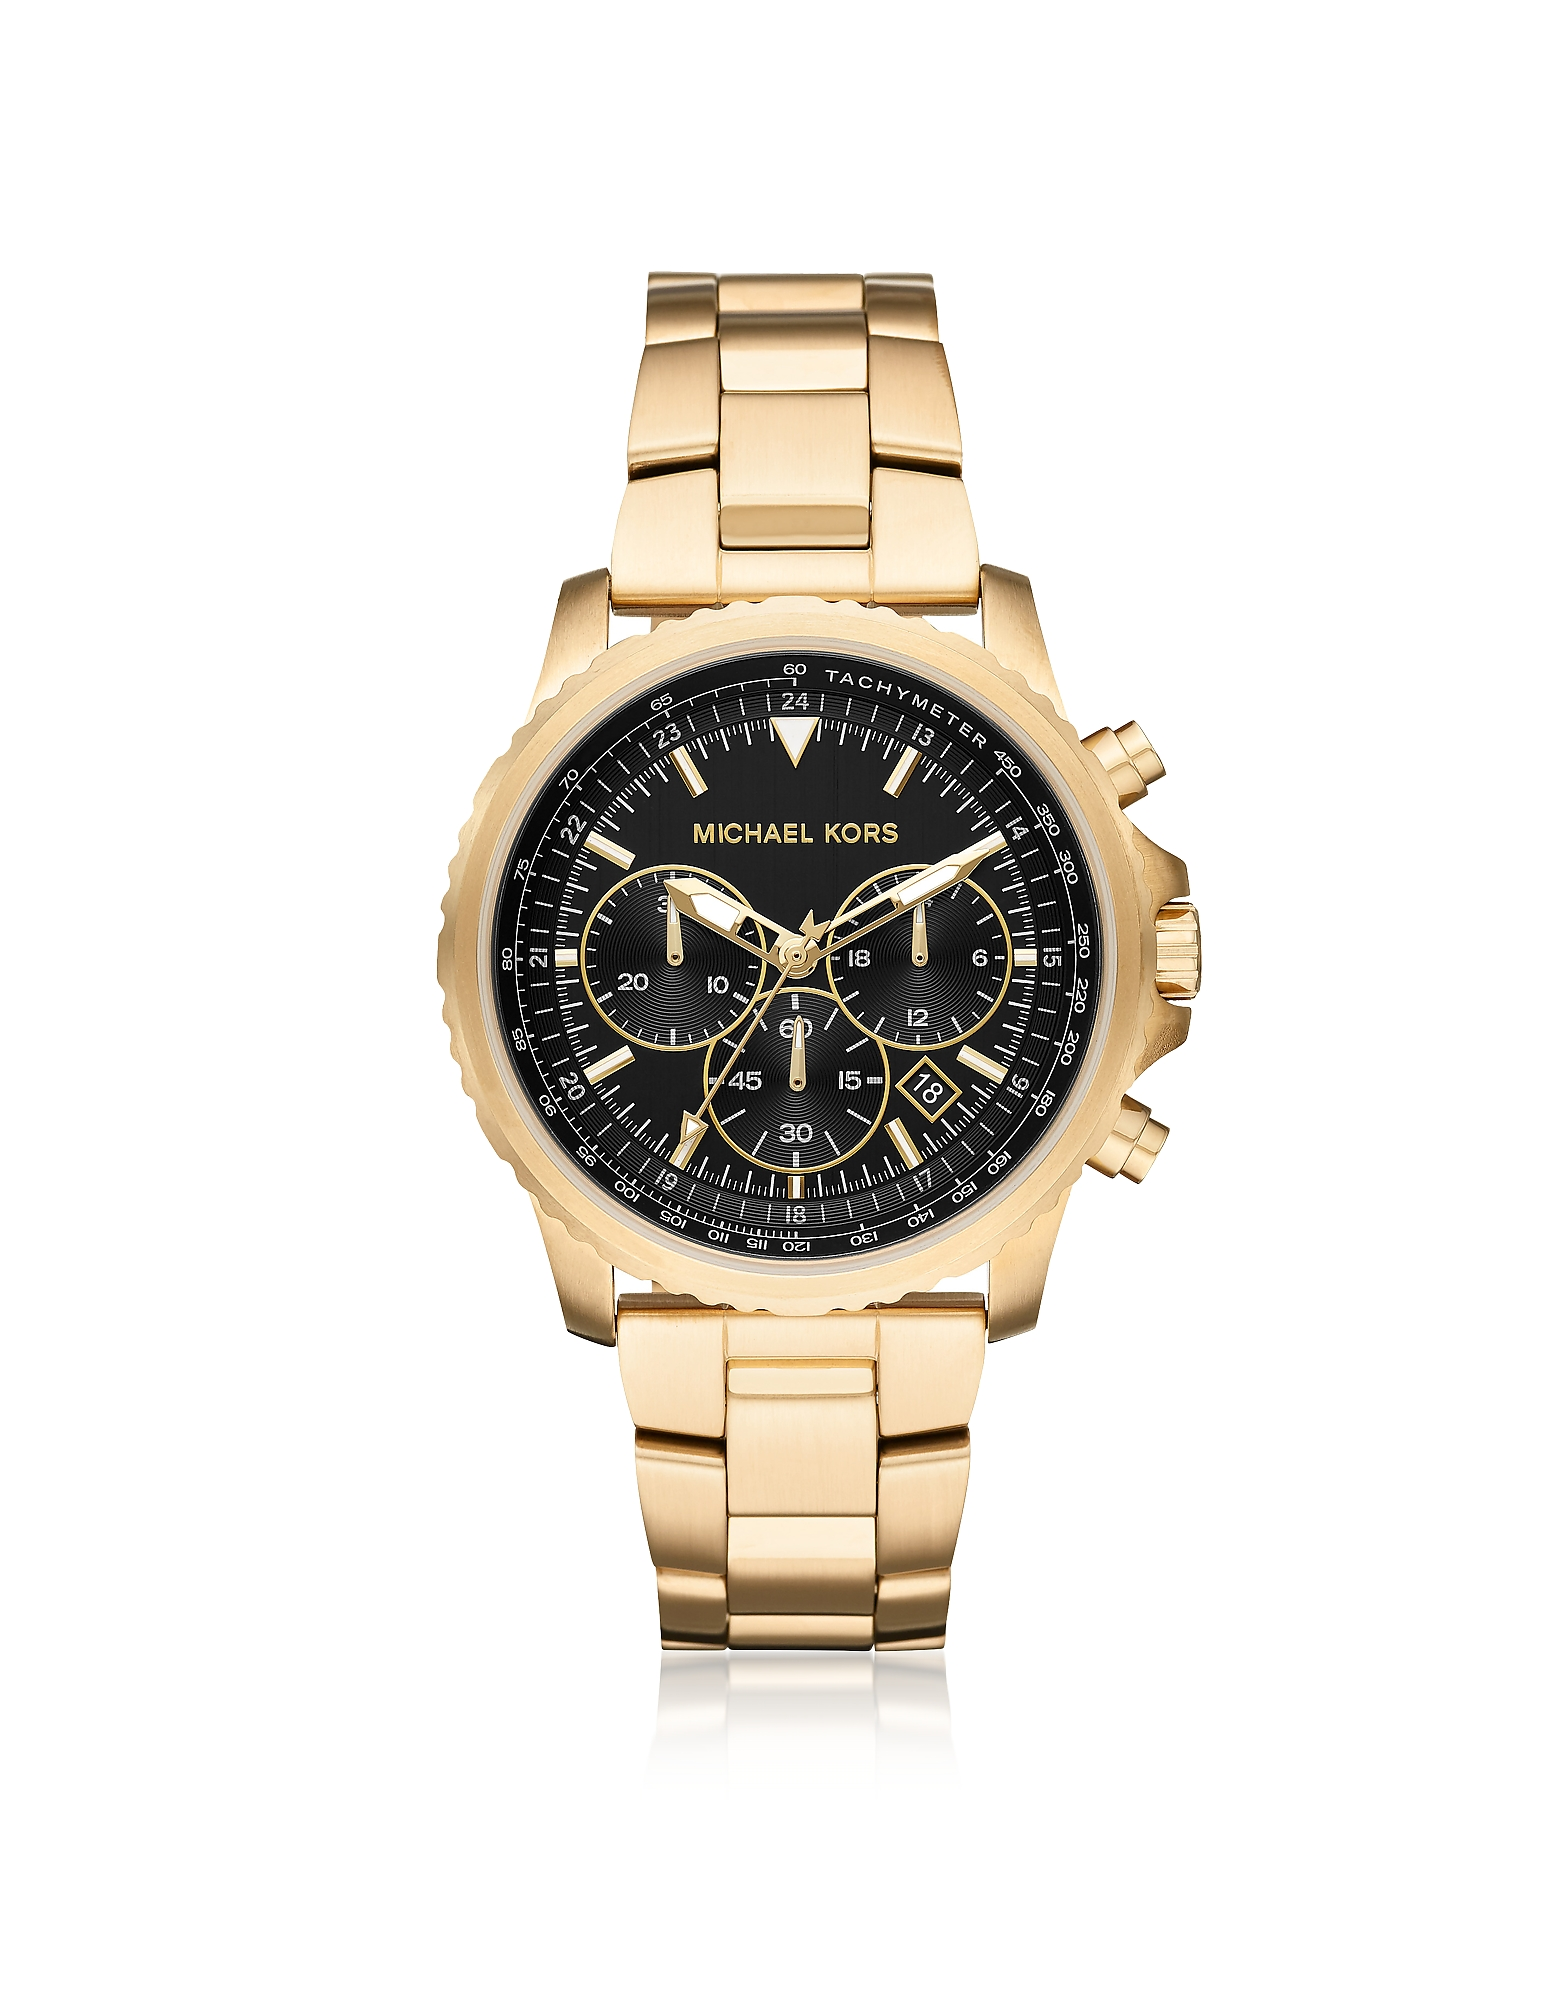 Theroux Gold Tone Chronograph Watch